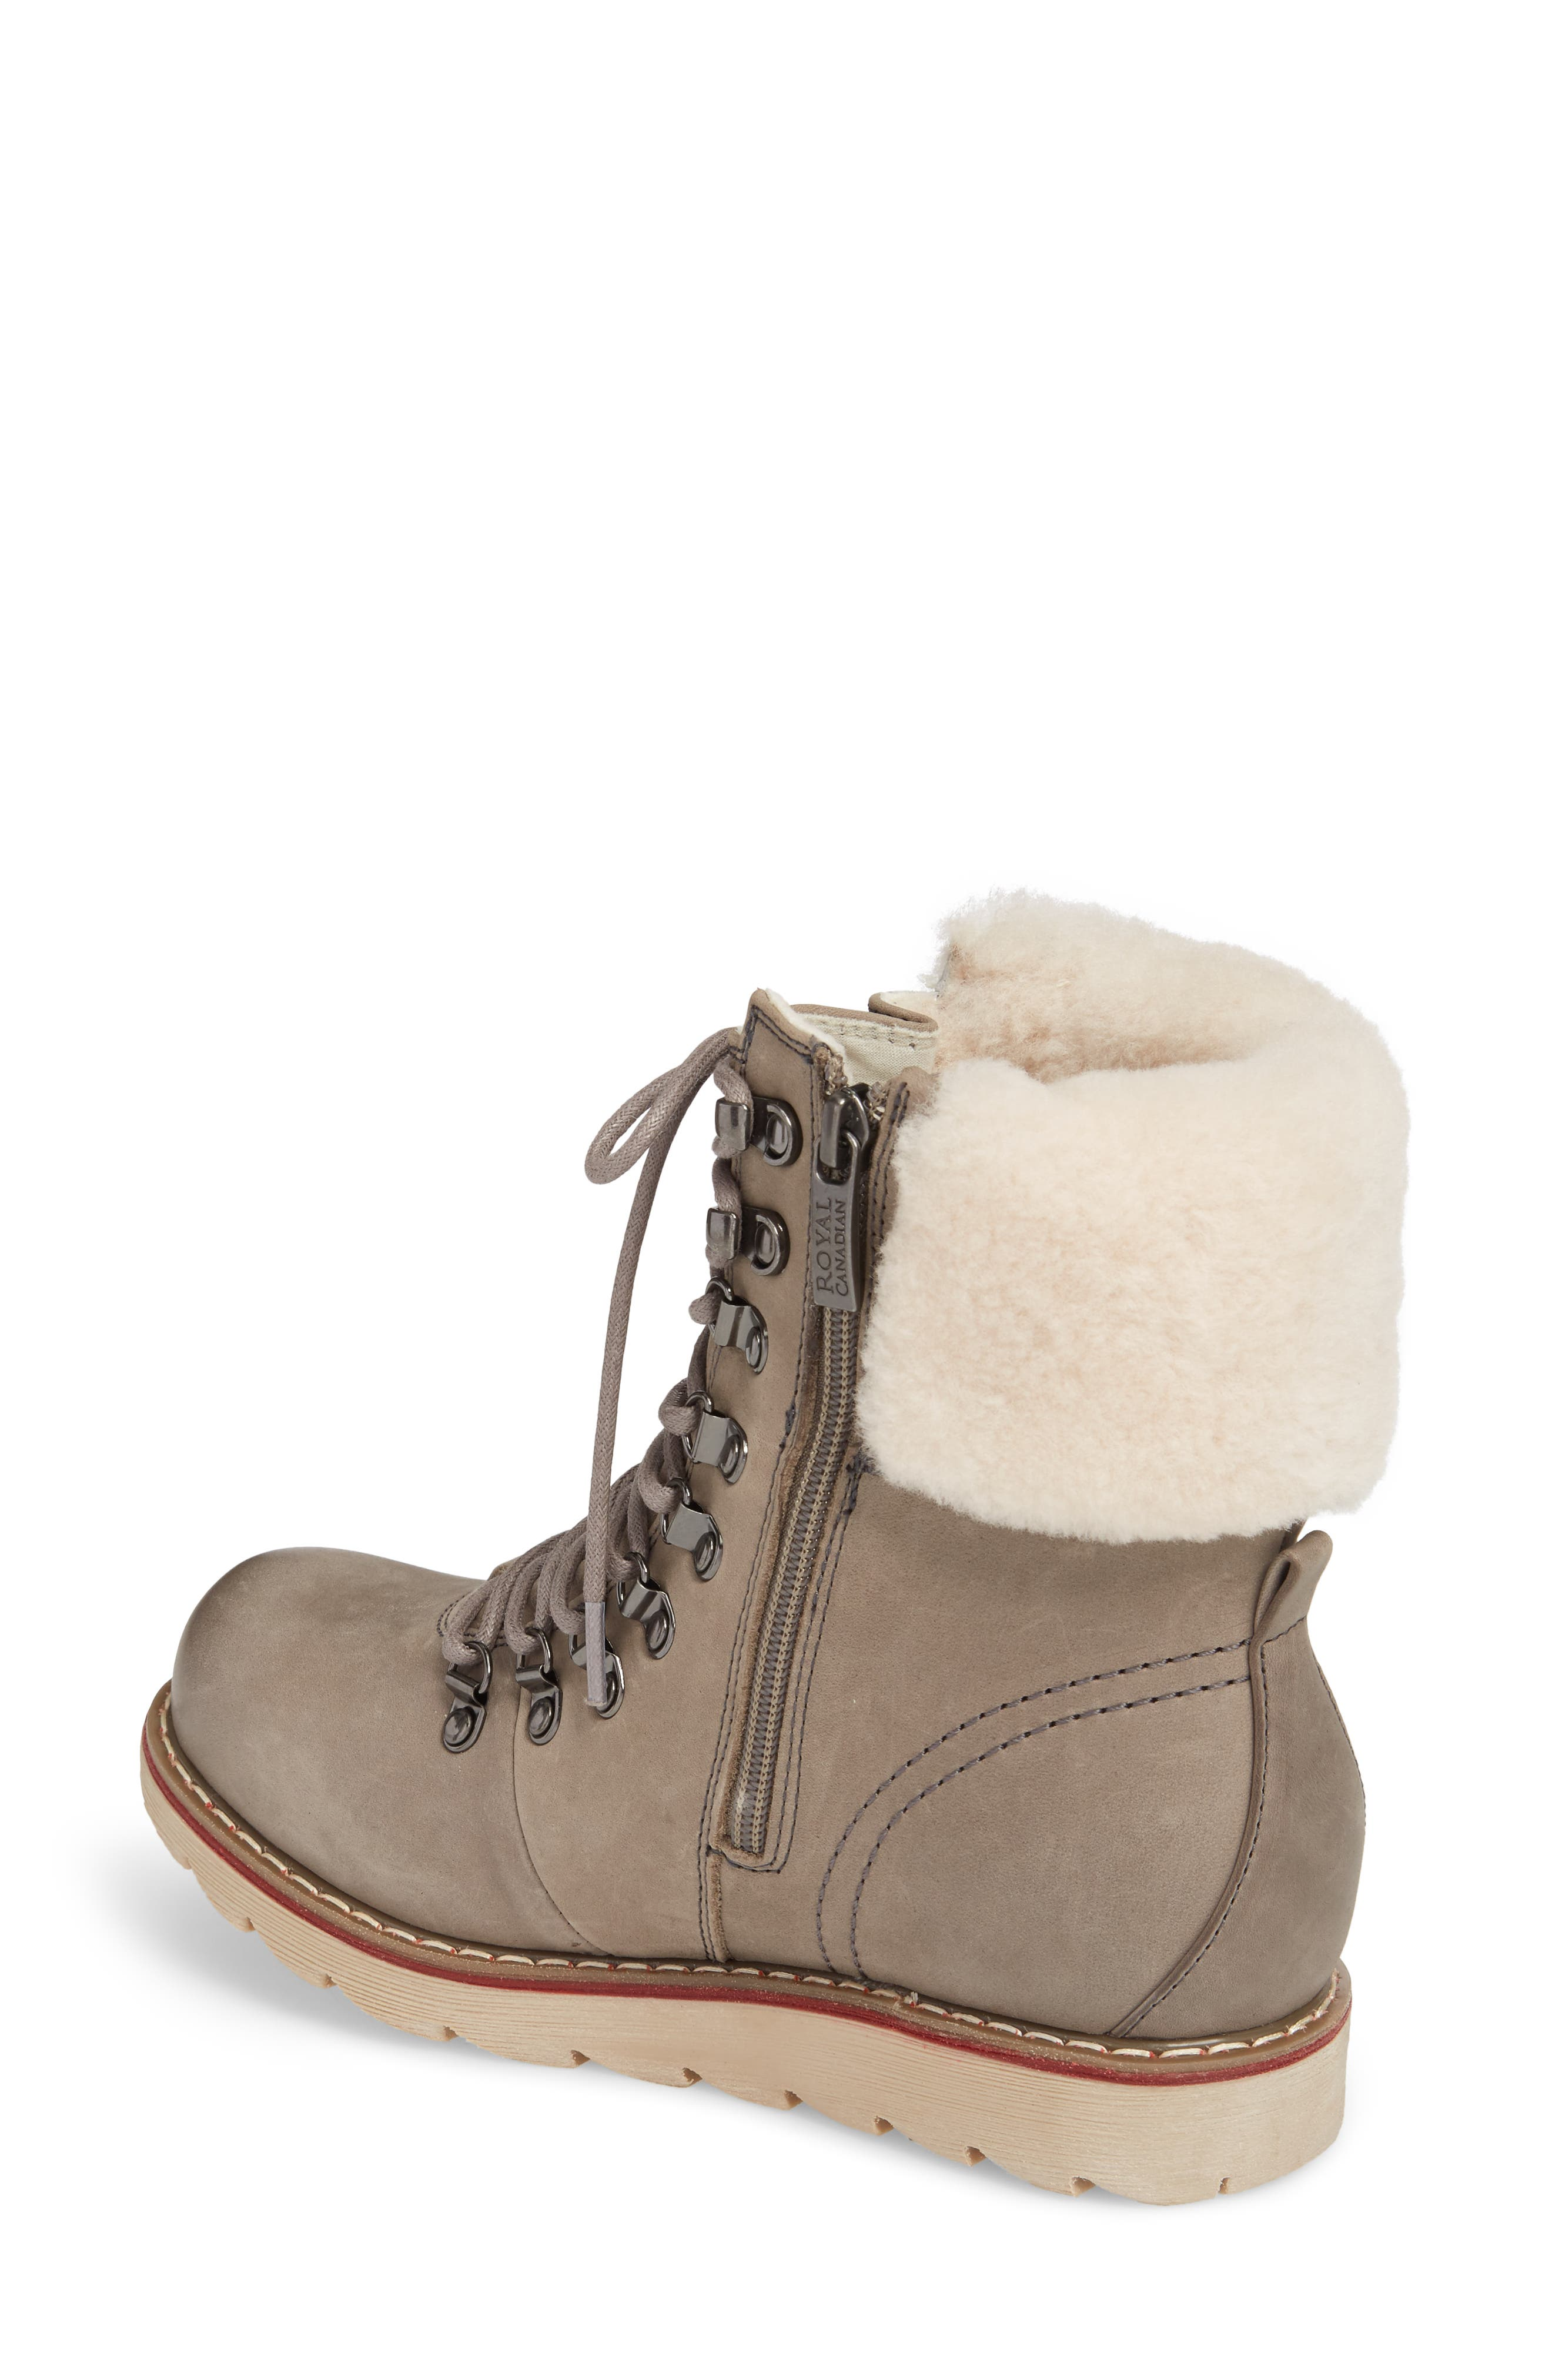 Lethbridge Waterproof Snow Boot with Genuine Shearling Cuff,                             Alternate thumbnail 6, color,